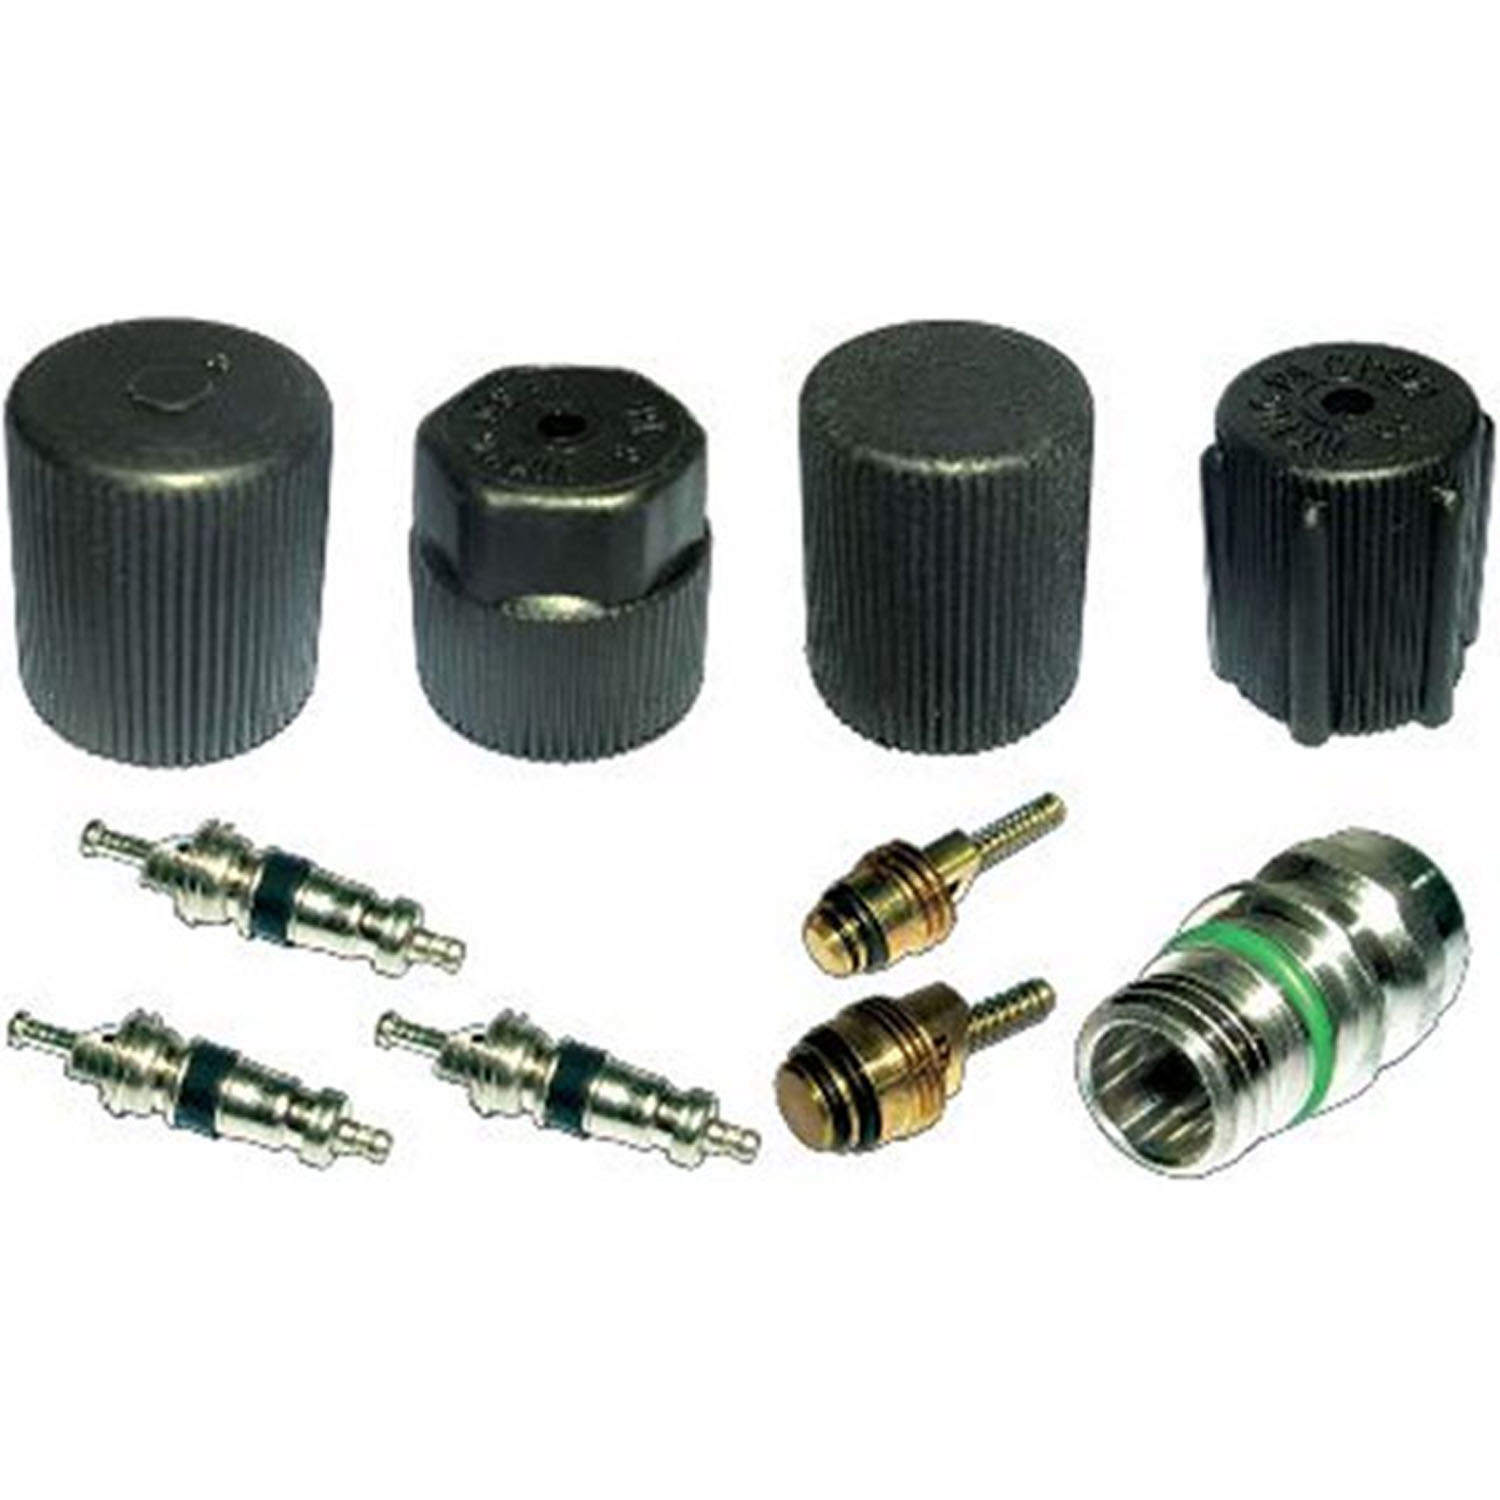 Valve and Cap Kit VC 2908